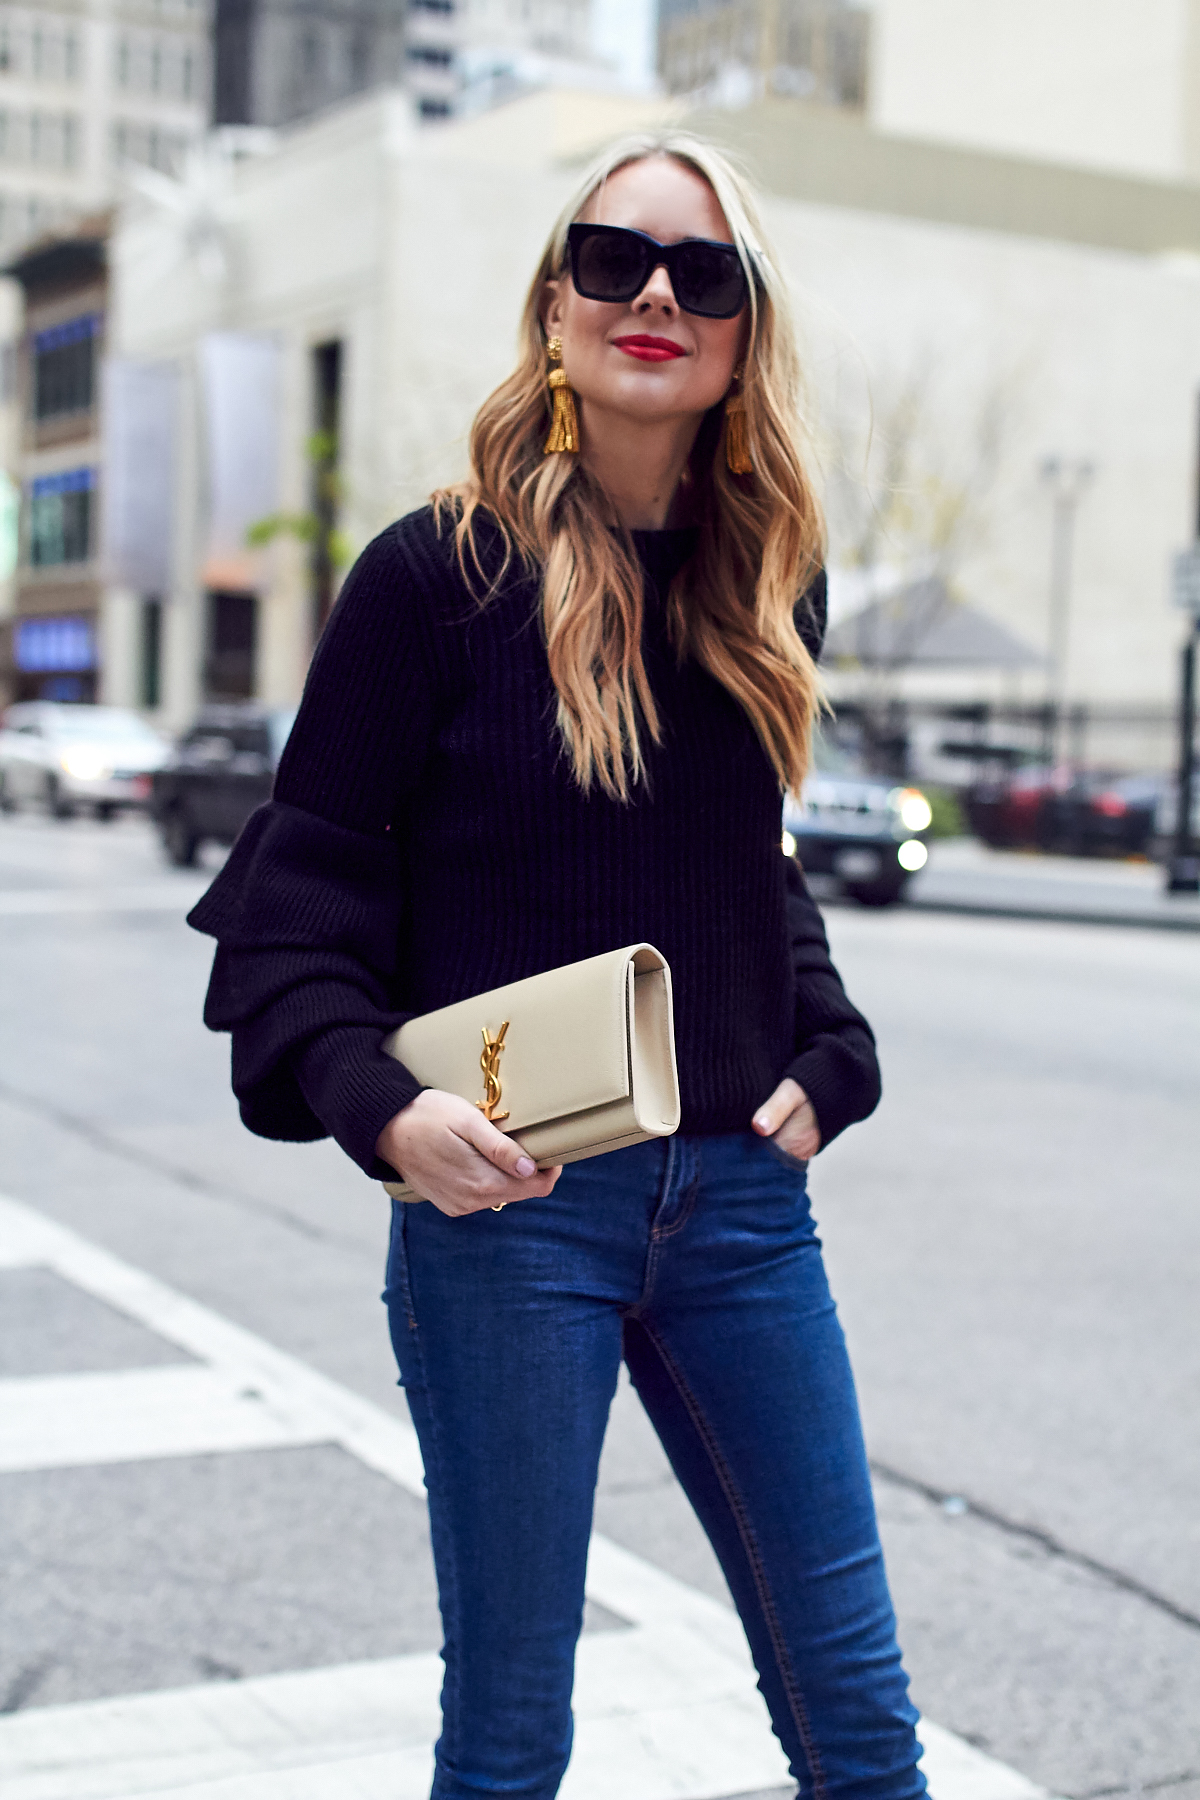 Fall Outfit, Winter Outfit, Ruffle Sleeve Sweater, Saint Laurent Clutch, Red Lipstick, Gold Tassel Earrings